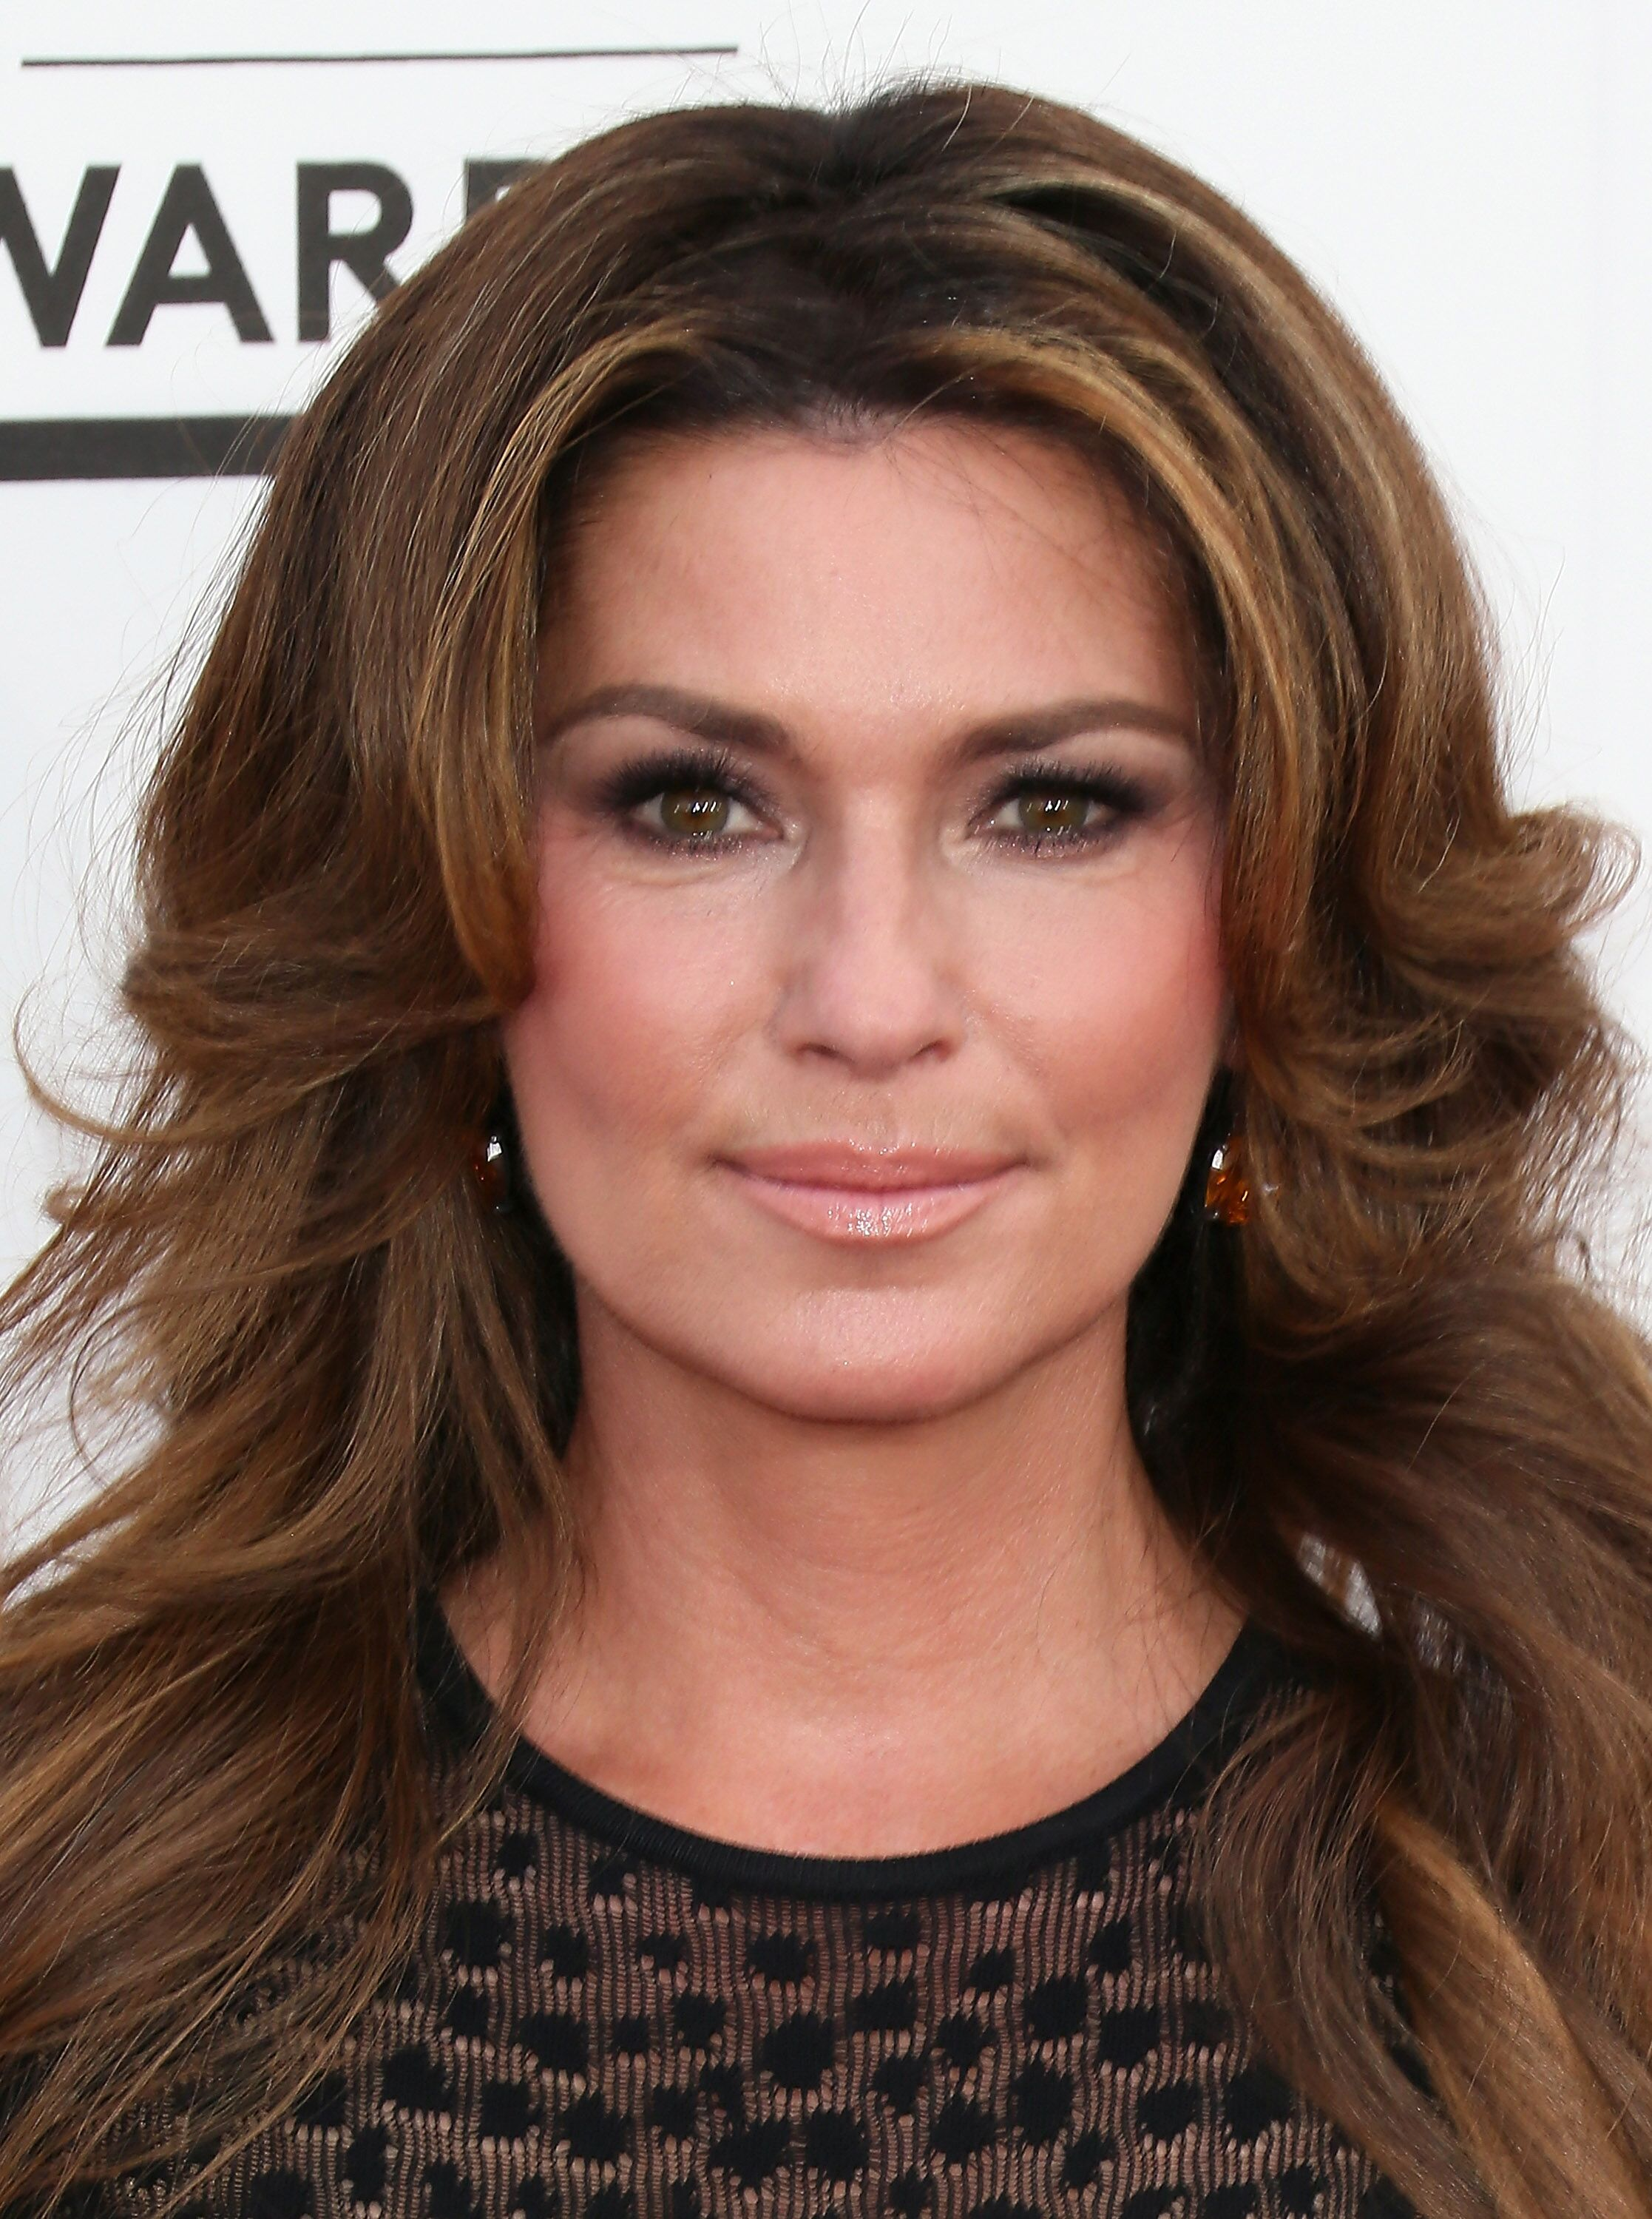 Shania Twain attends the 2014 Billboard Music Awards. | Source: Getty Images